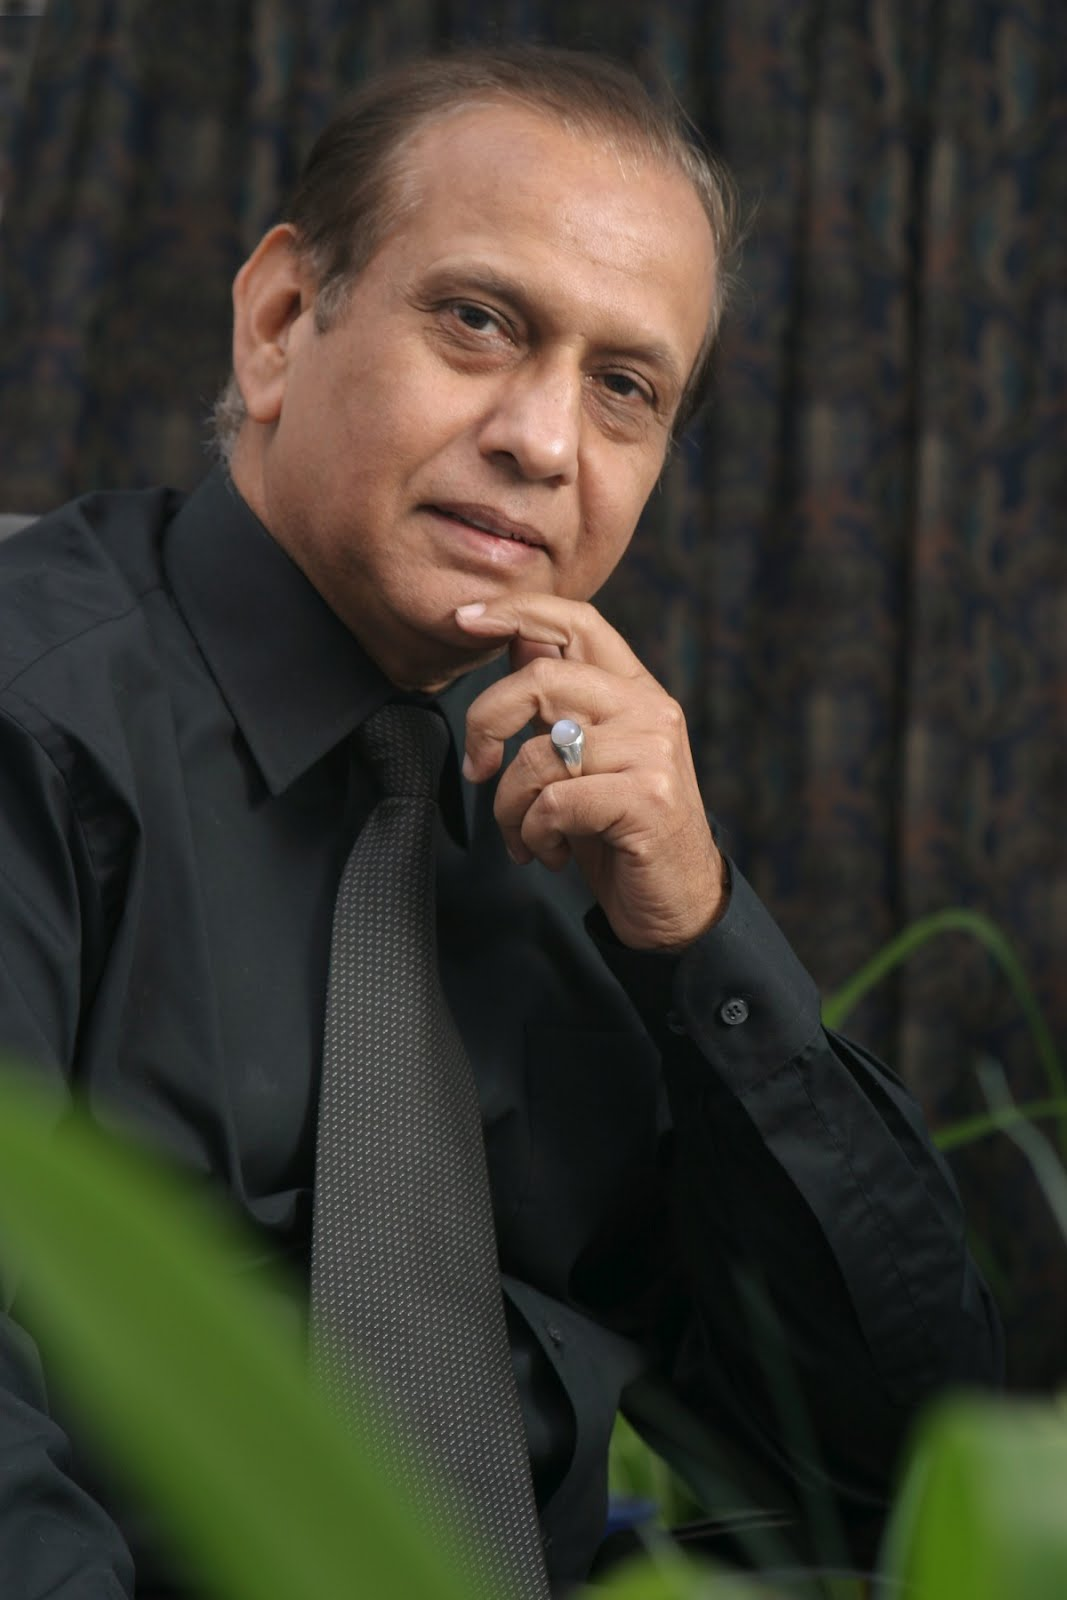 Virender Kapoor